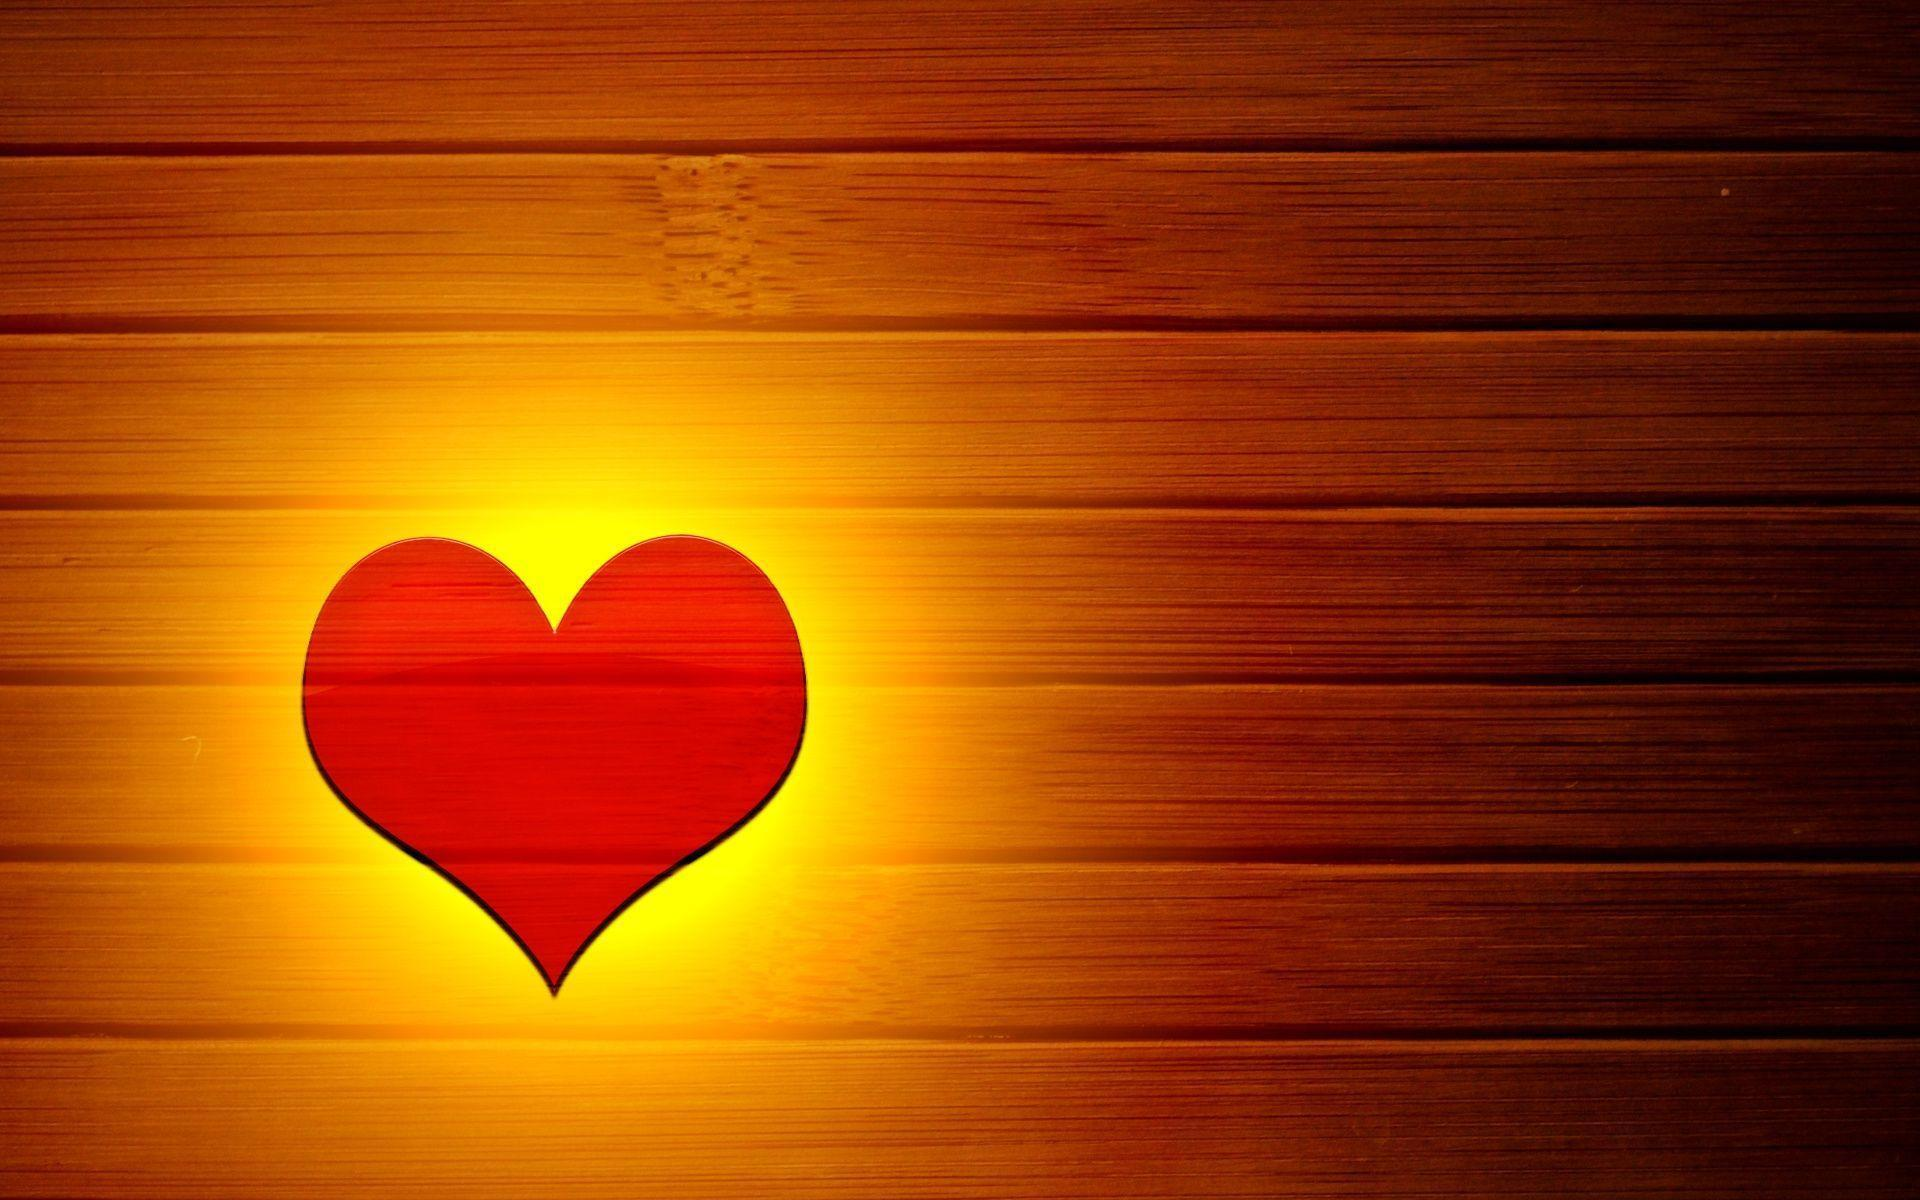 Love Wallpaper Portrait : Love Backgrounds Wallpapers - Wallpaper cave